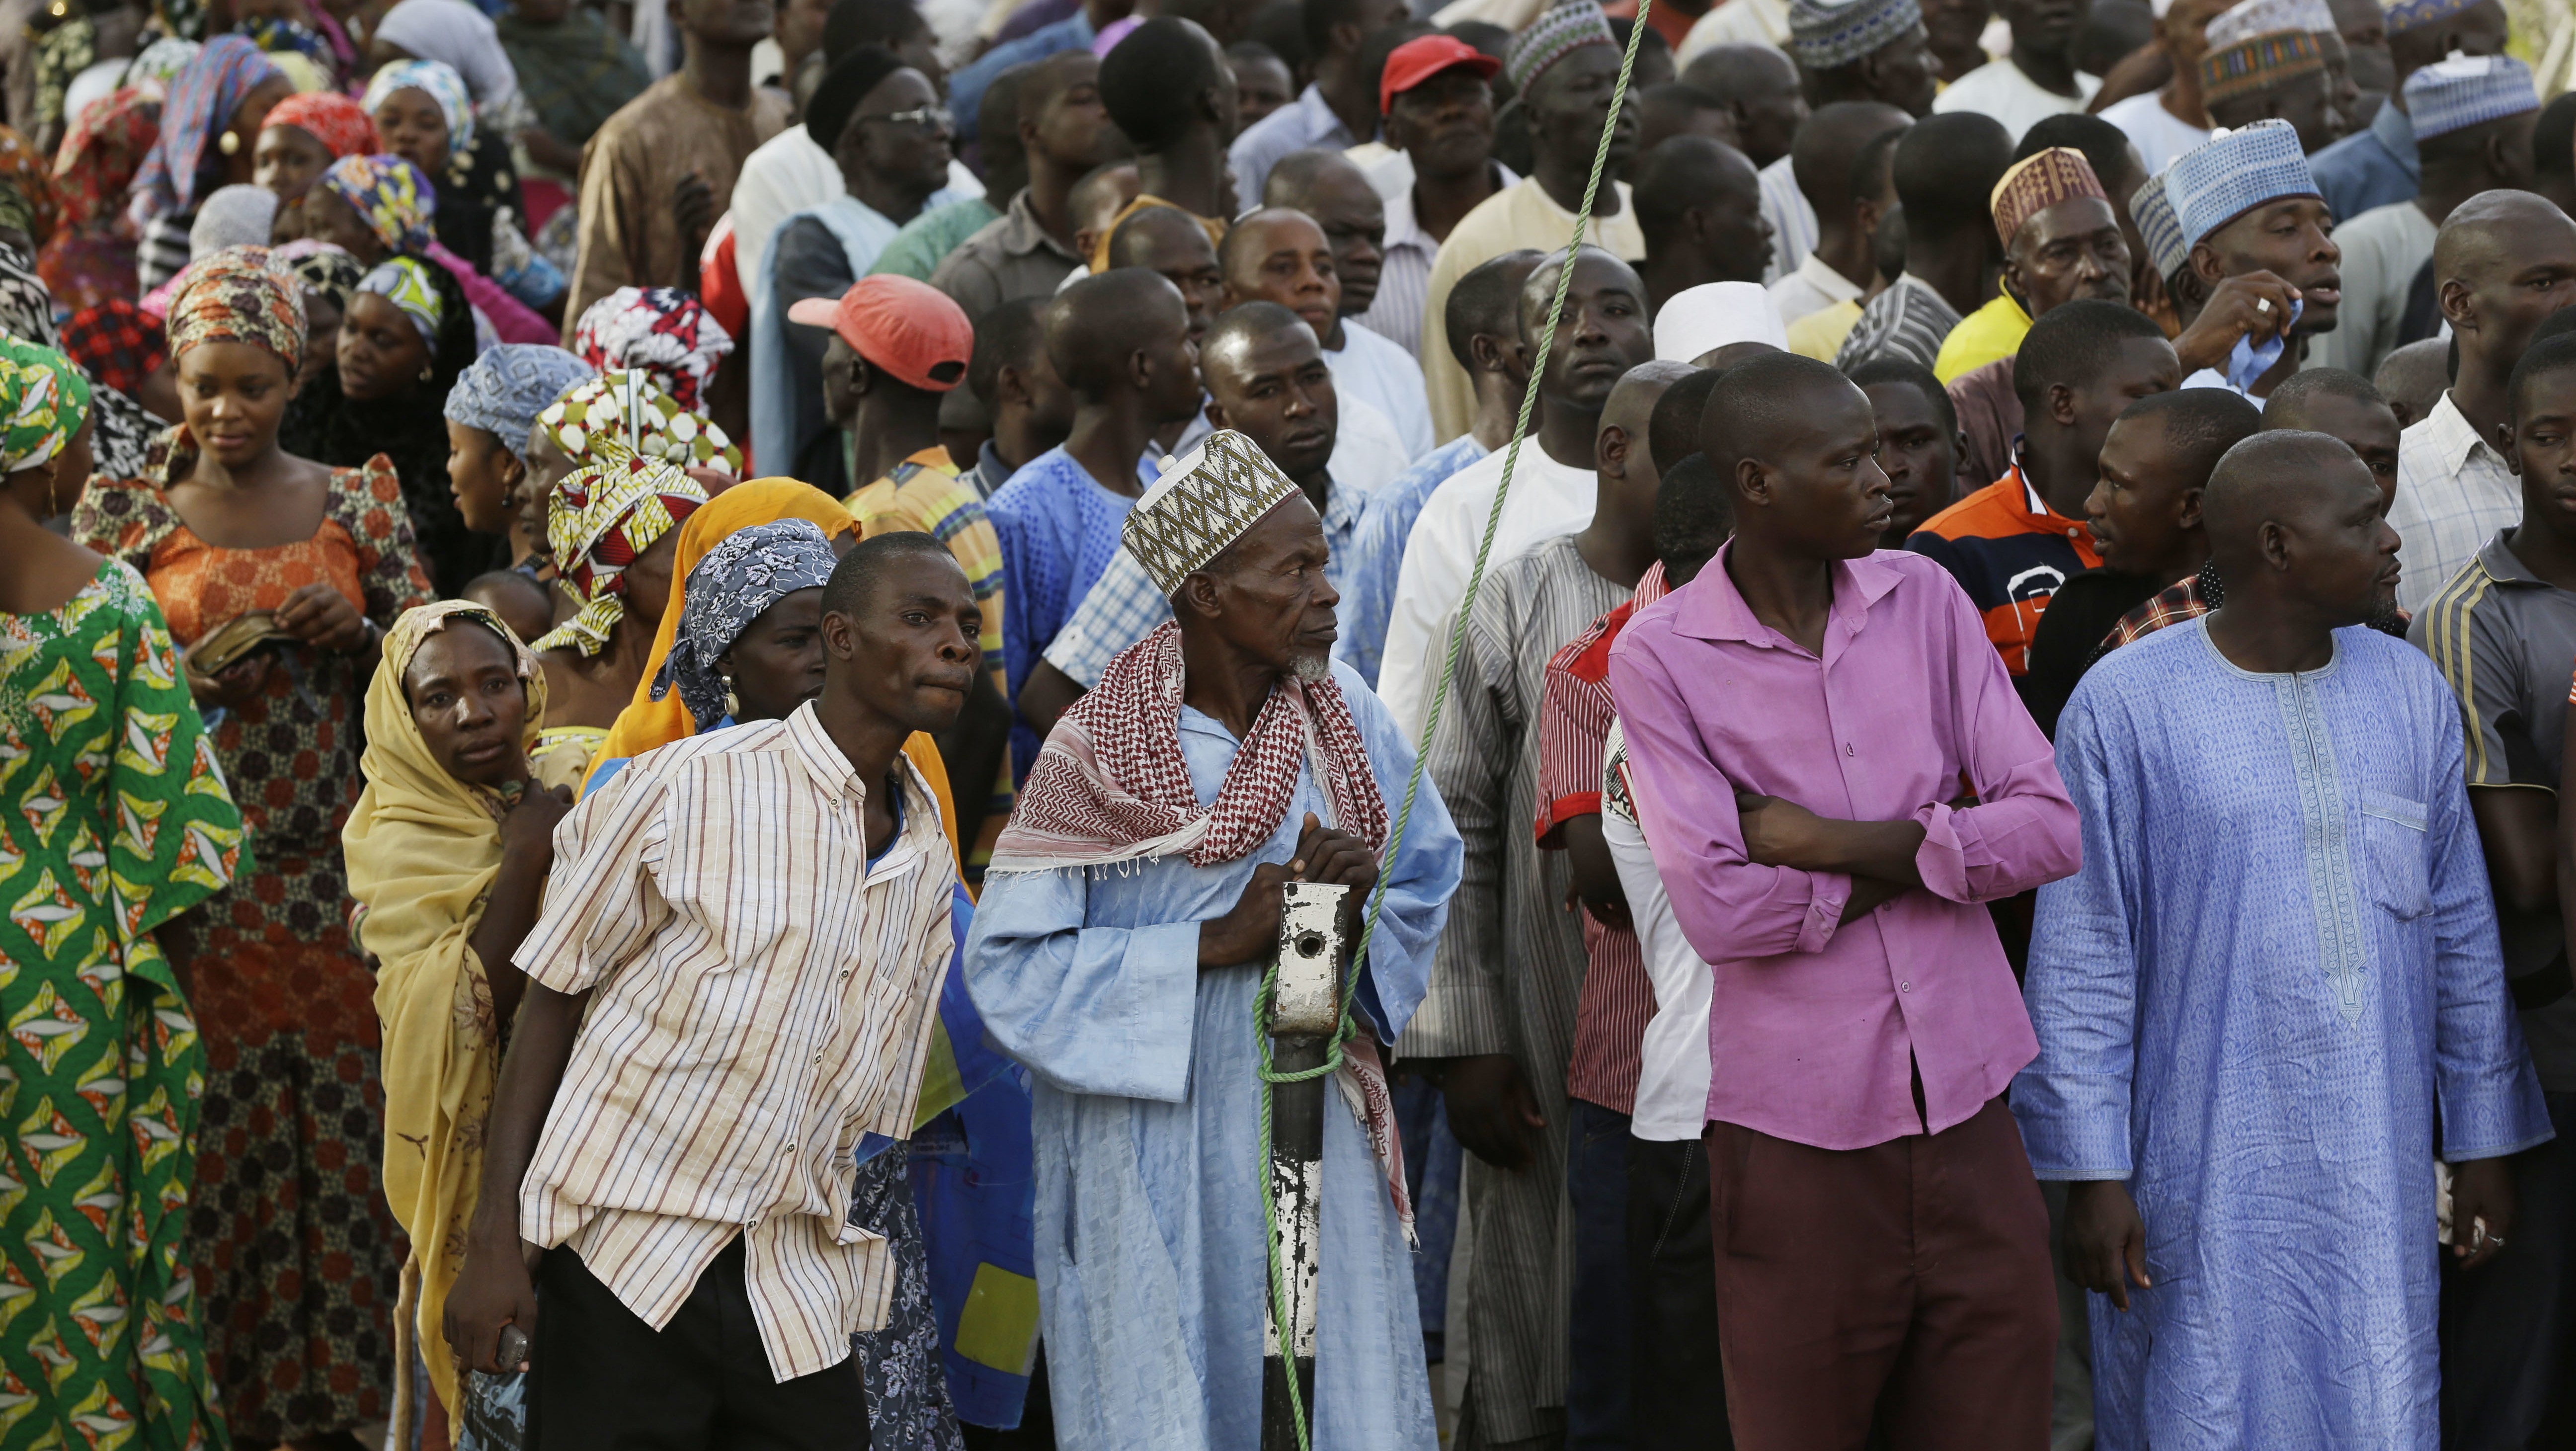 Election Day in Nigeria Marred by Boko Haram Attacks and Voting Difficulties